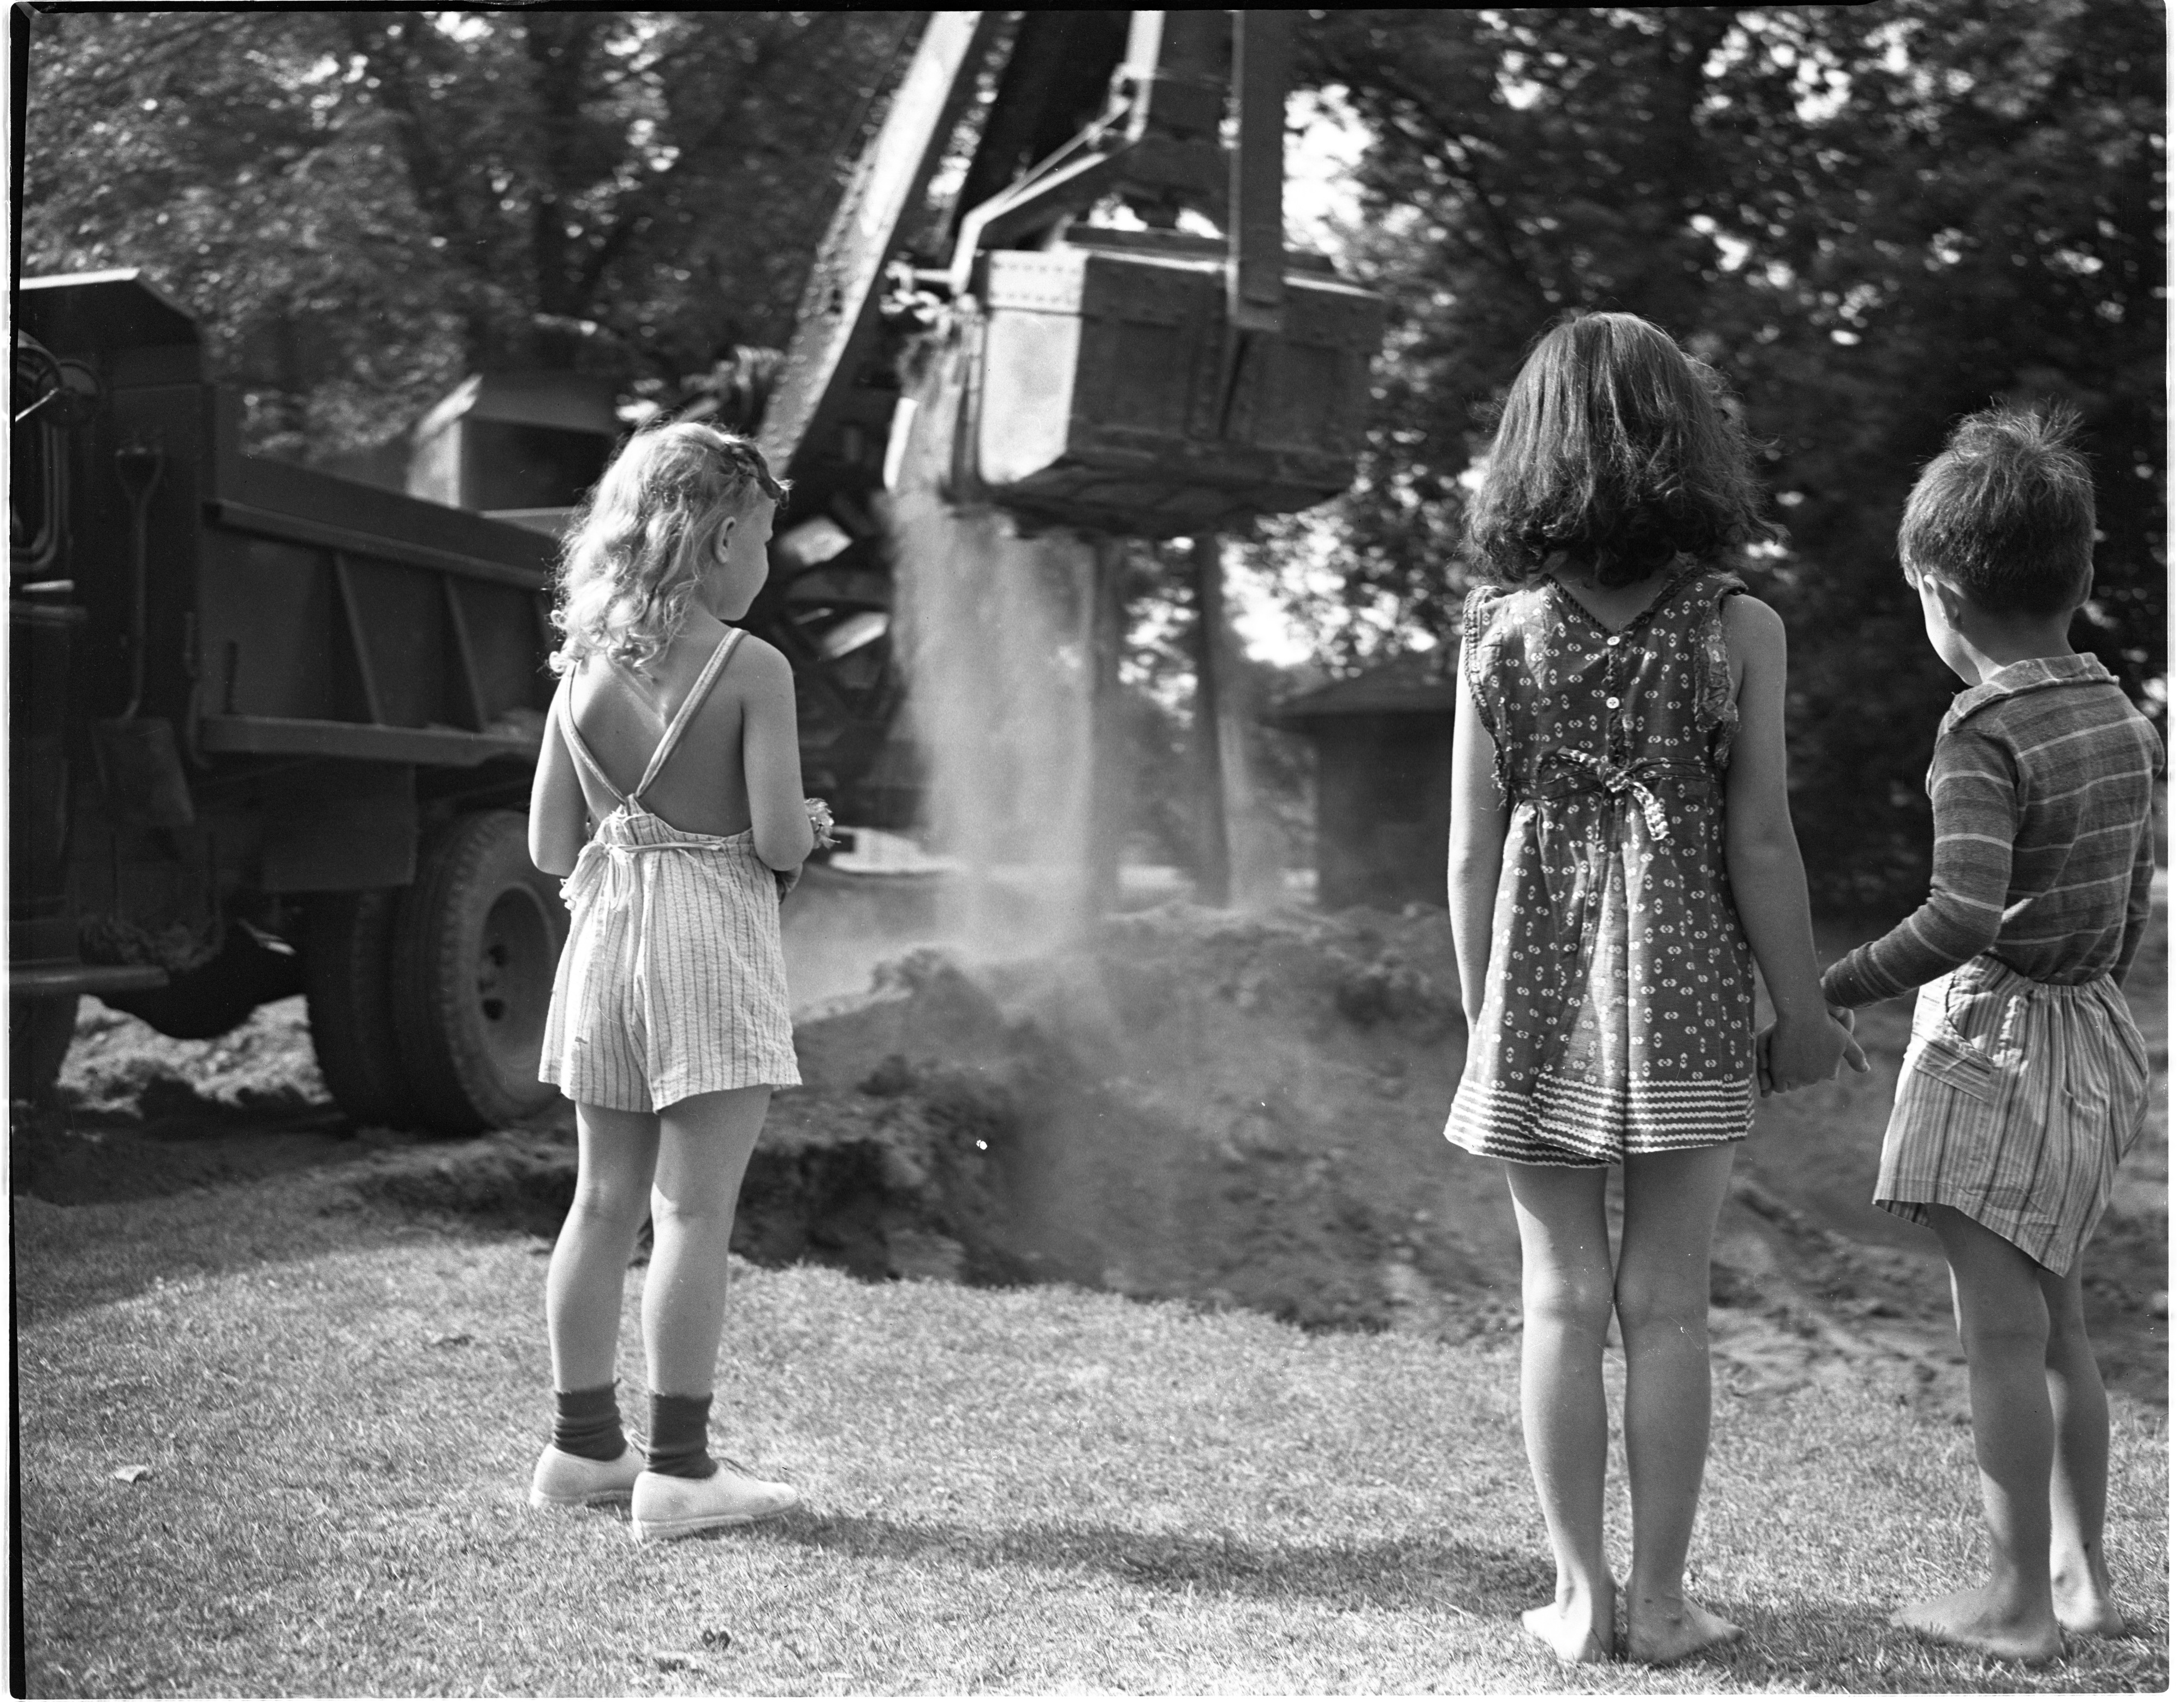 Neighborhood Children Watch The Construction Of The Burns Park Wading Pool, July 1944 image